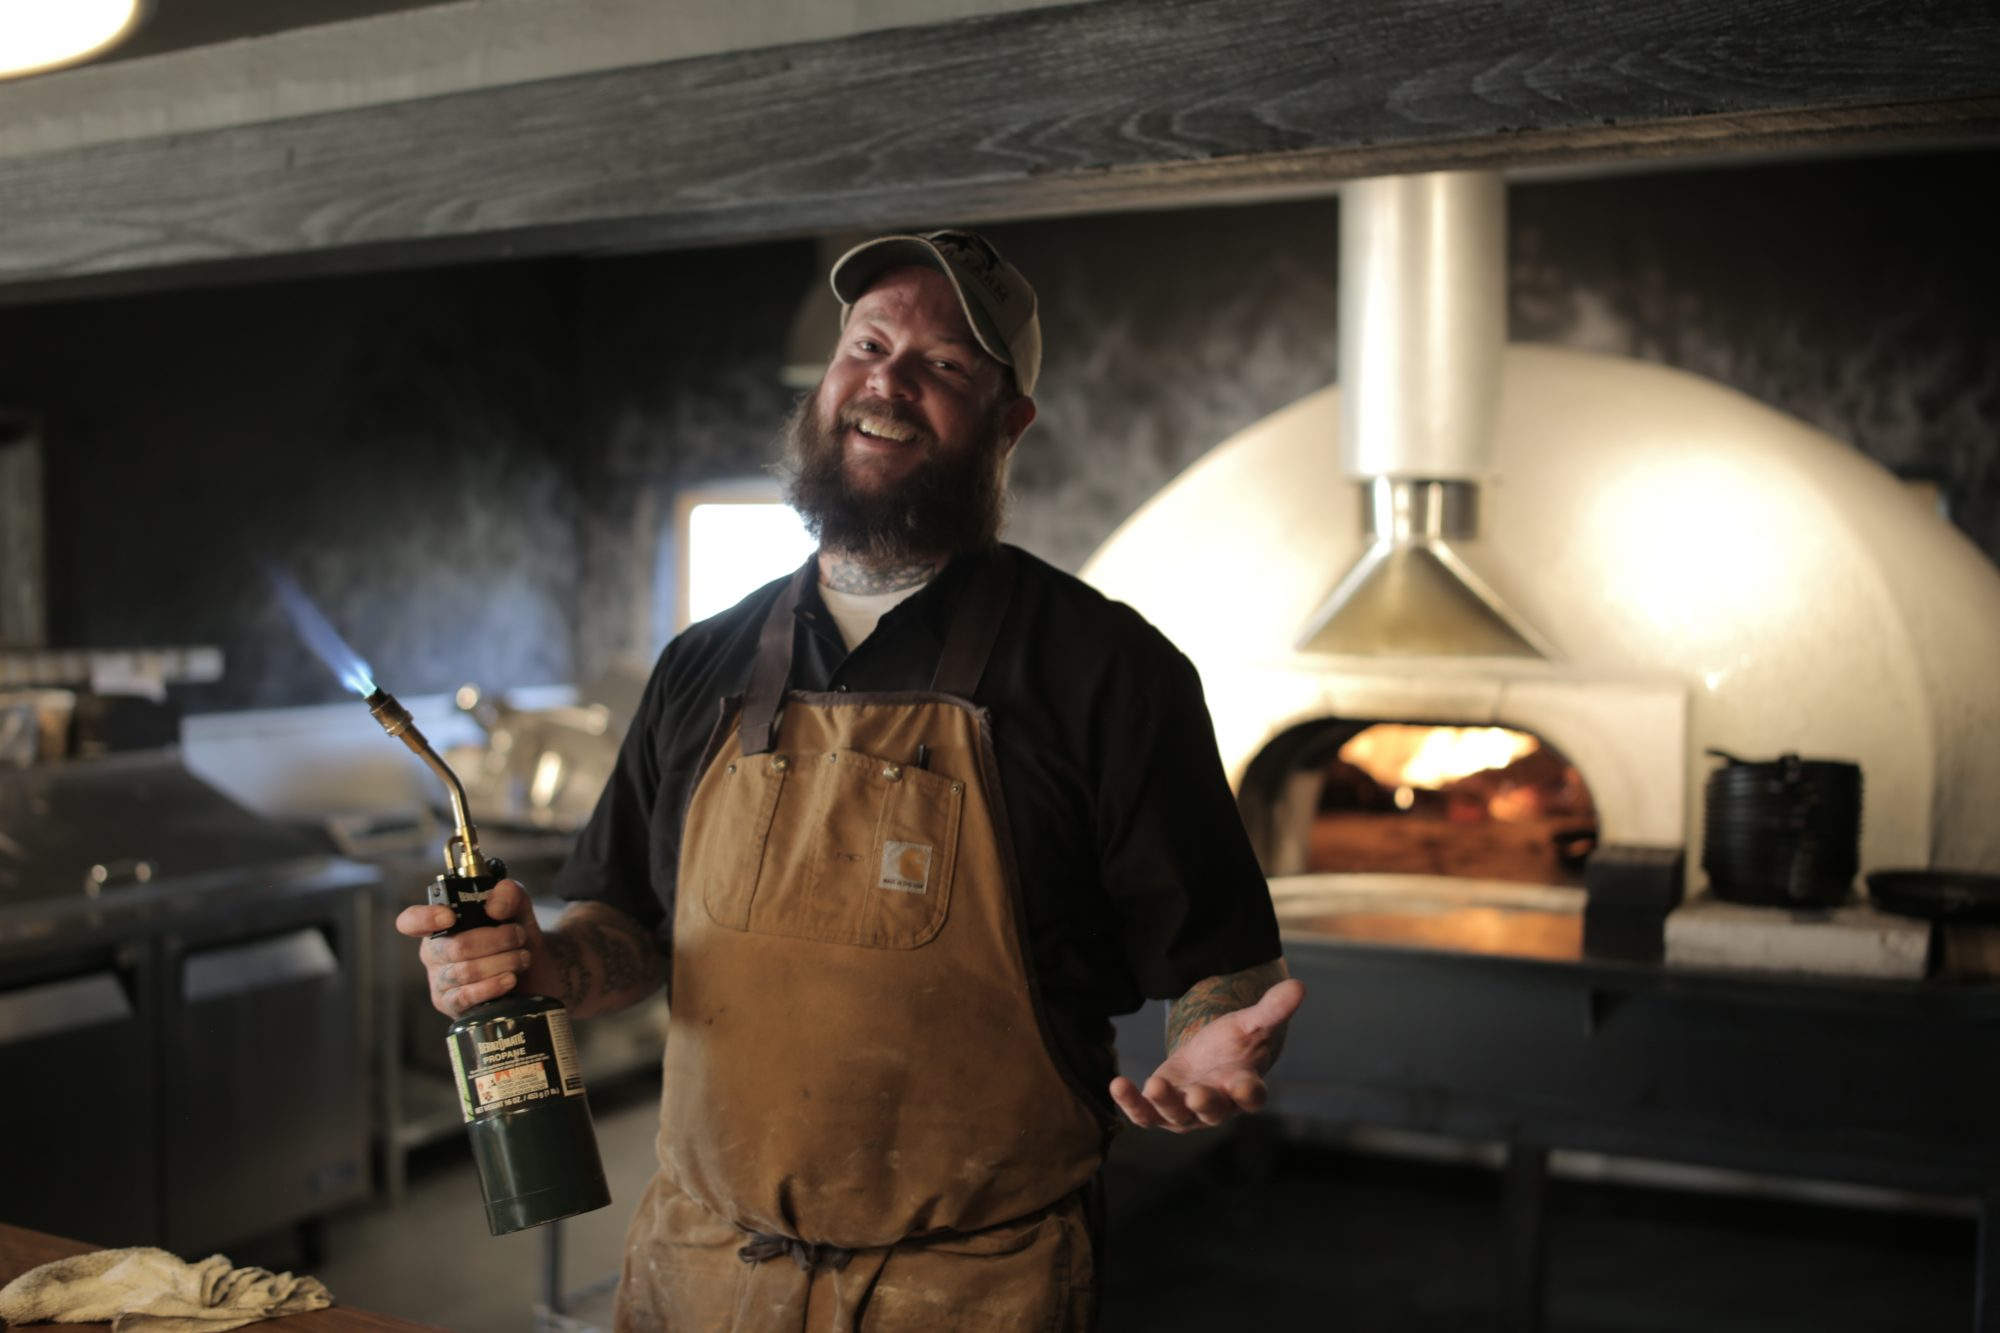 Chef Horton Profile, Taos News